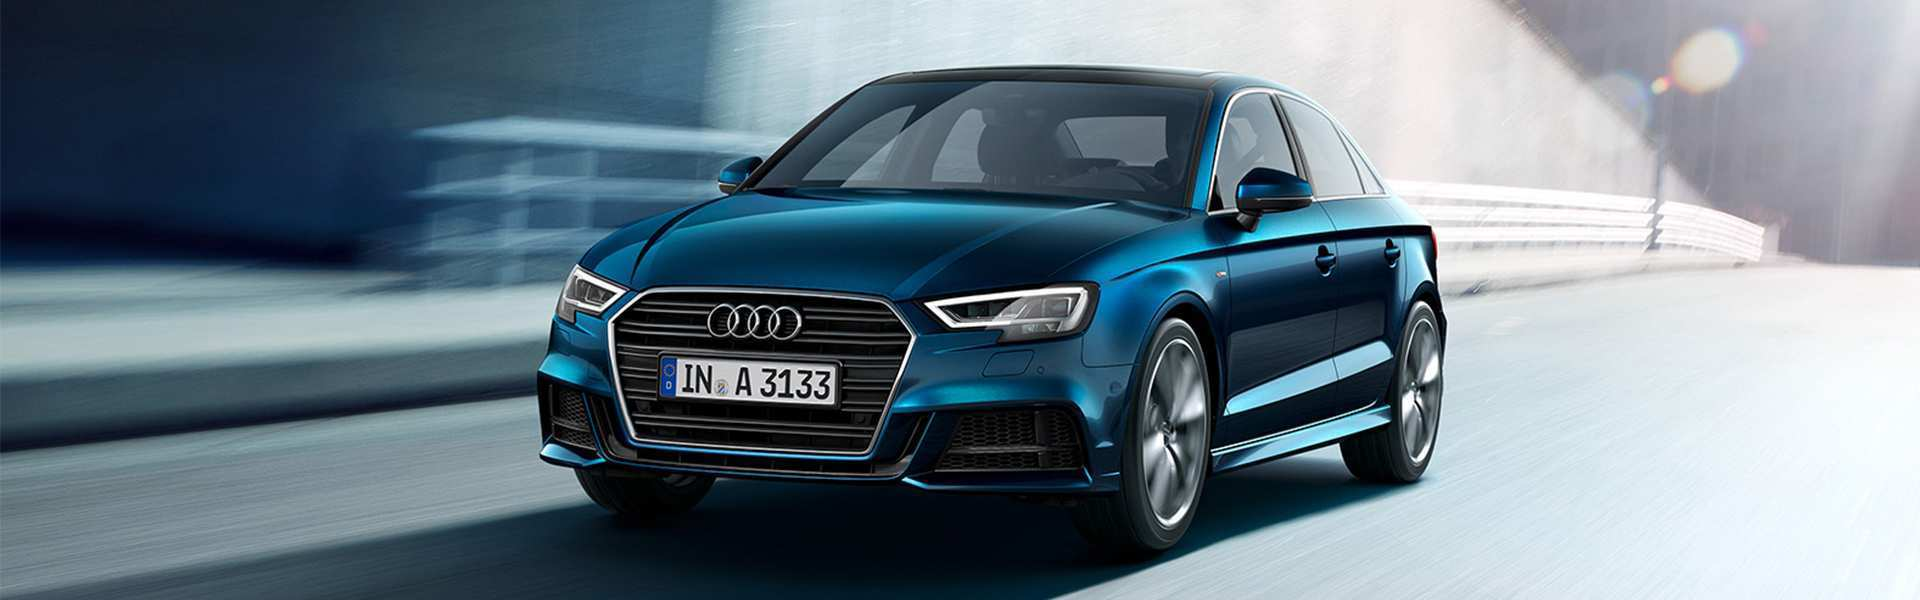 26 All New 2020 Audi A3 Concept